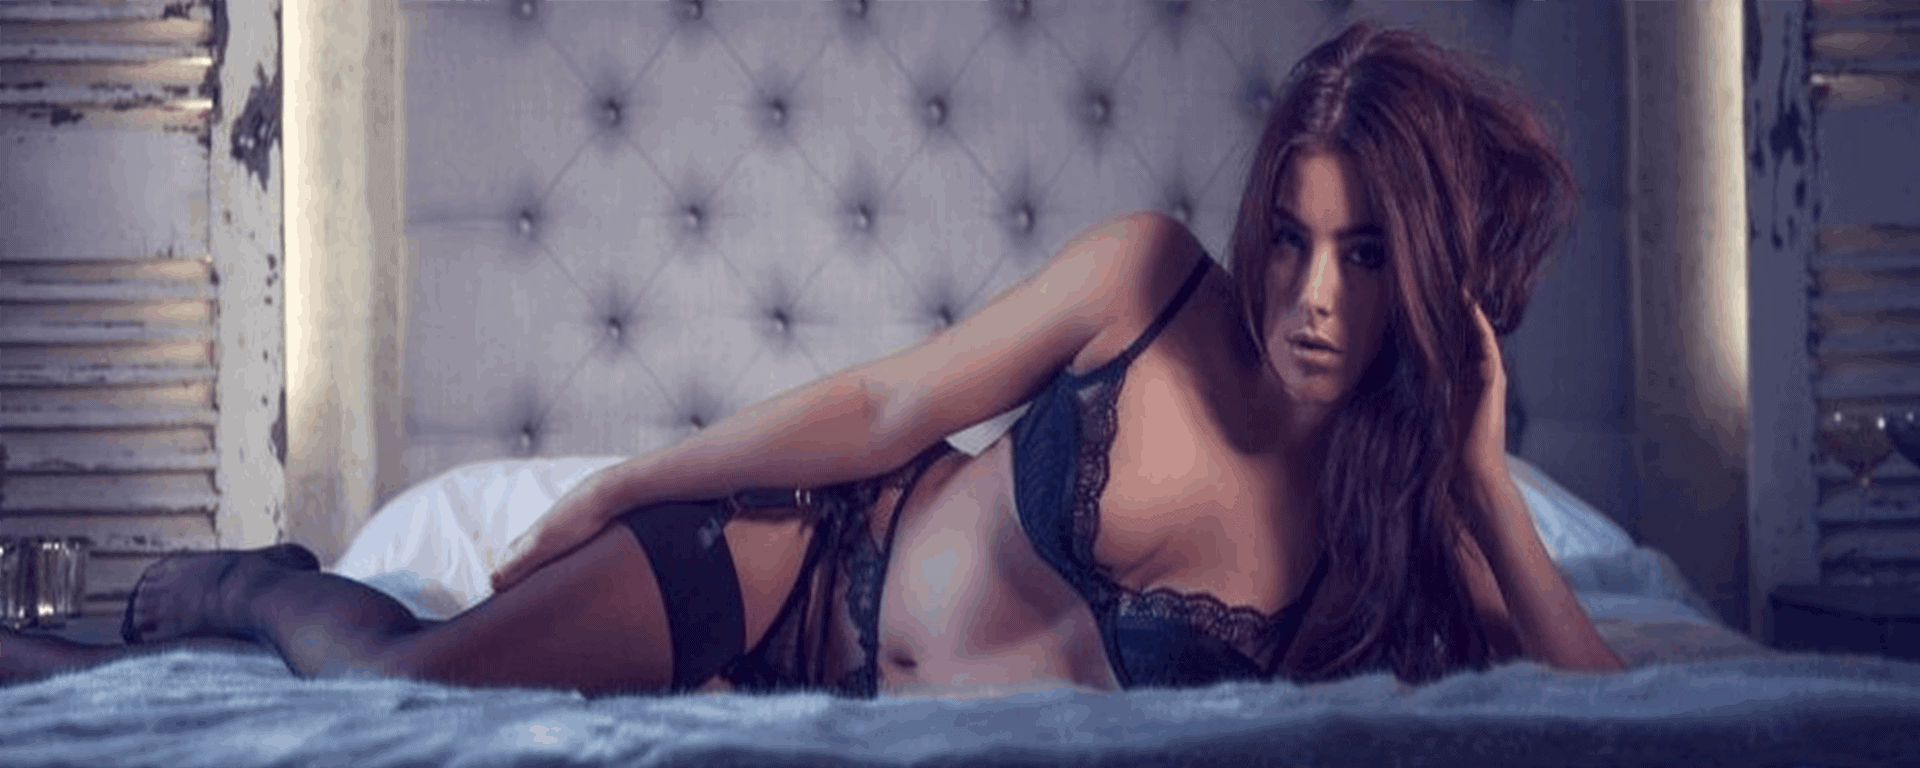 Kent Escorts – Escorts for you in Kent and in Maidstone